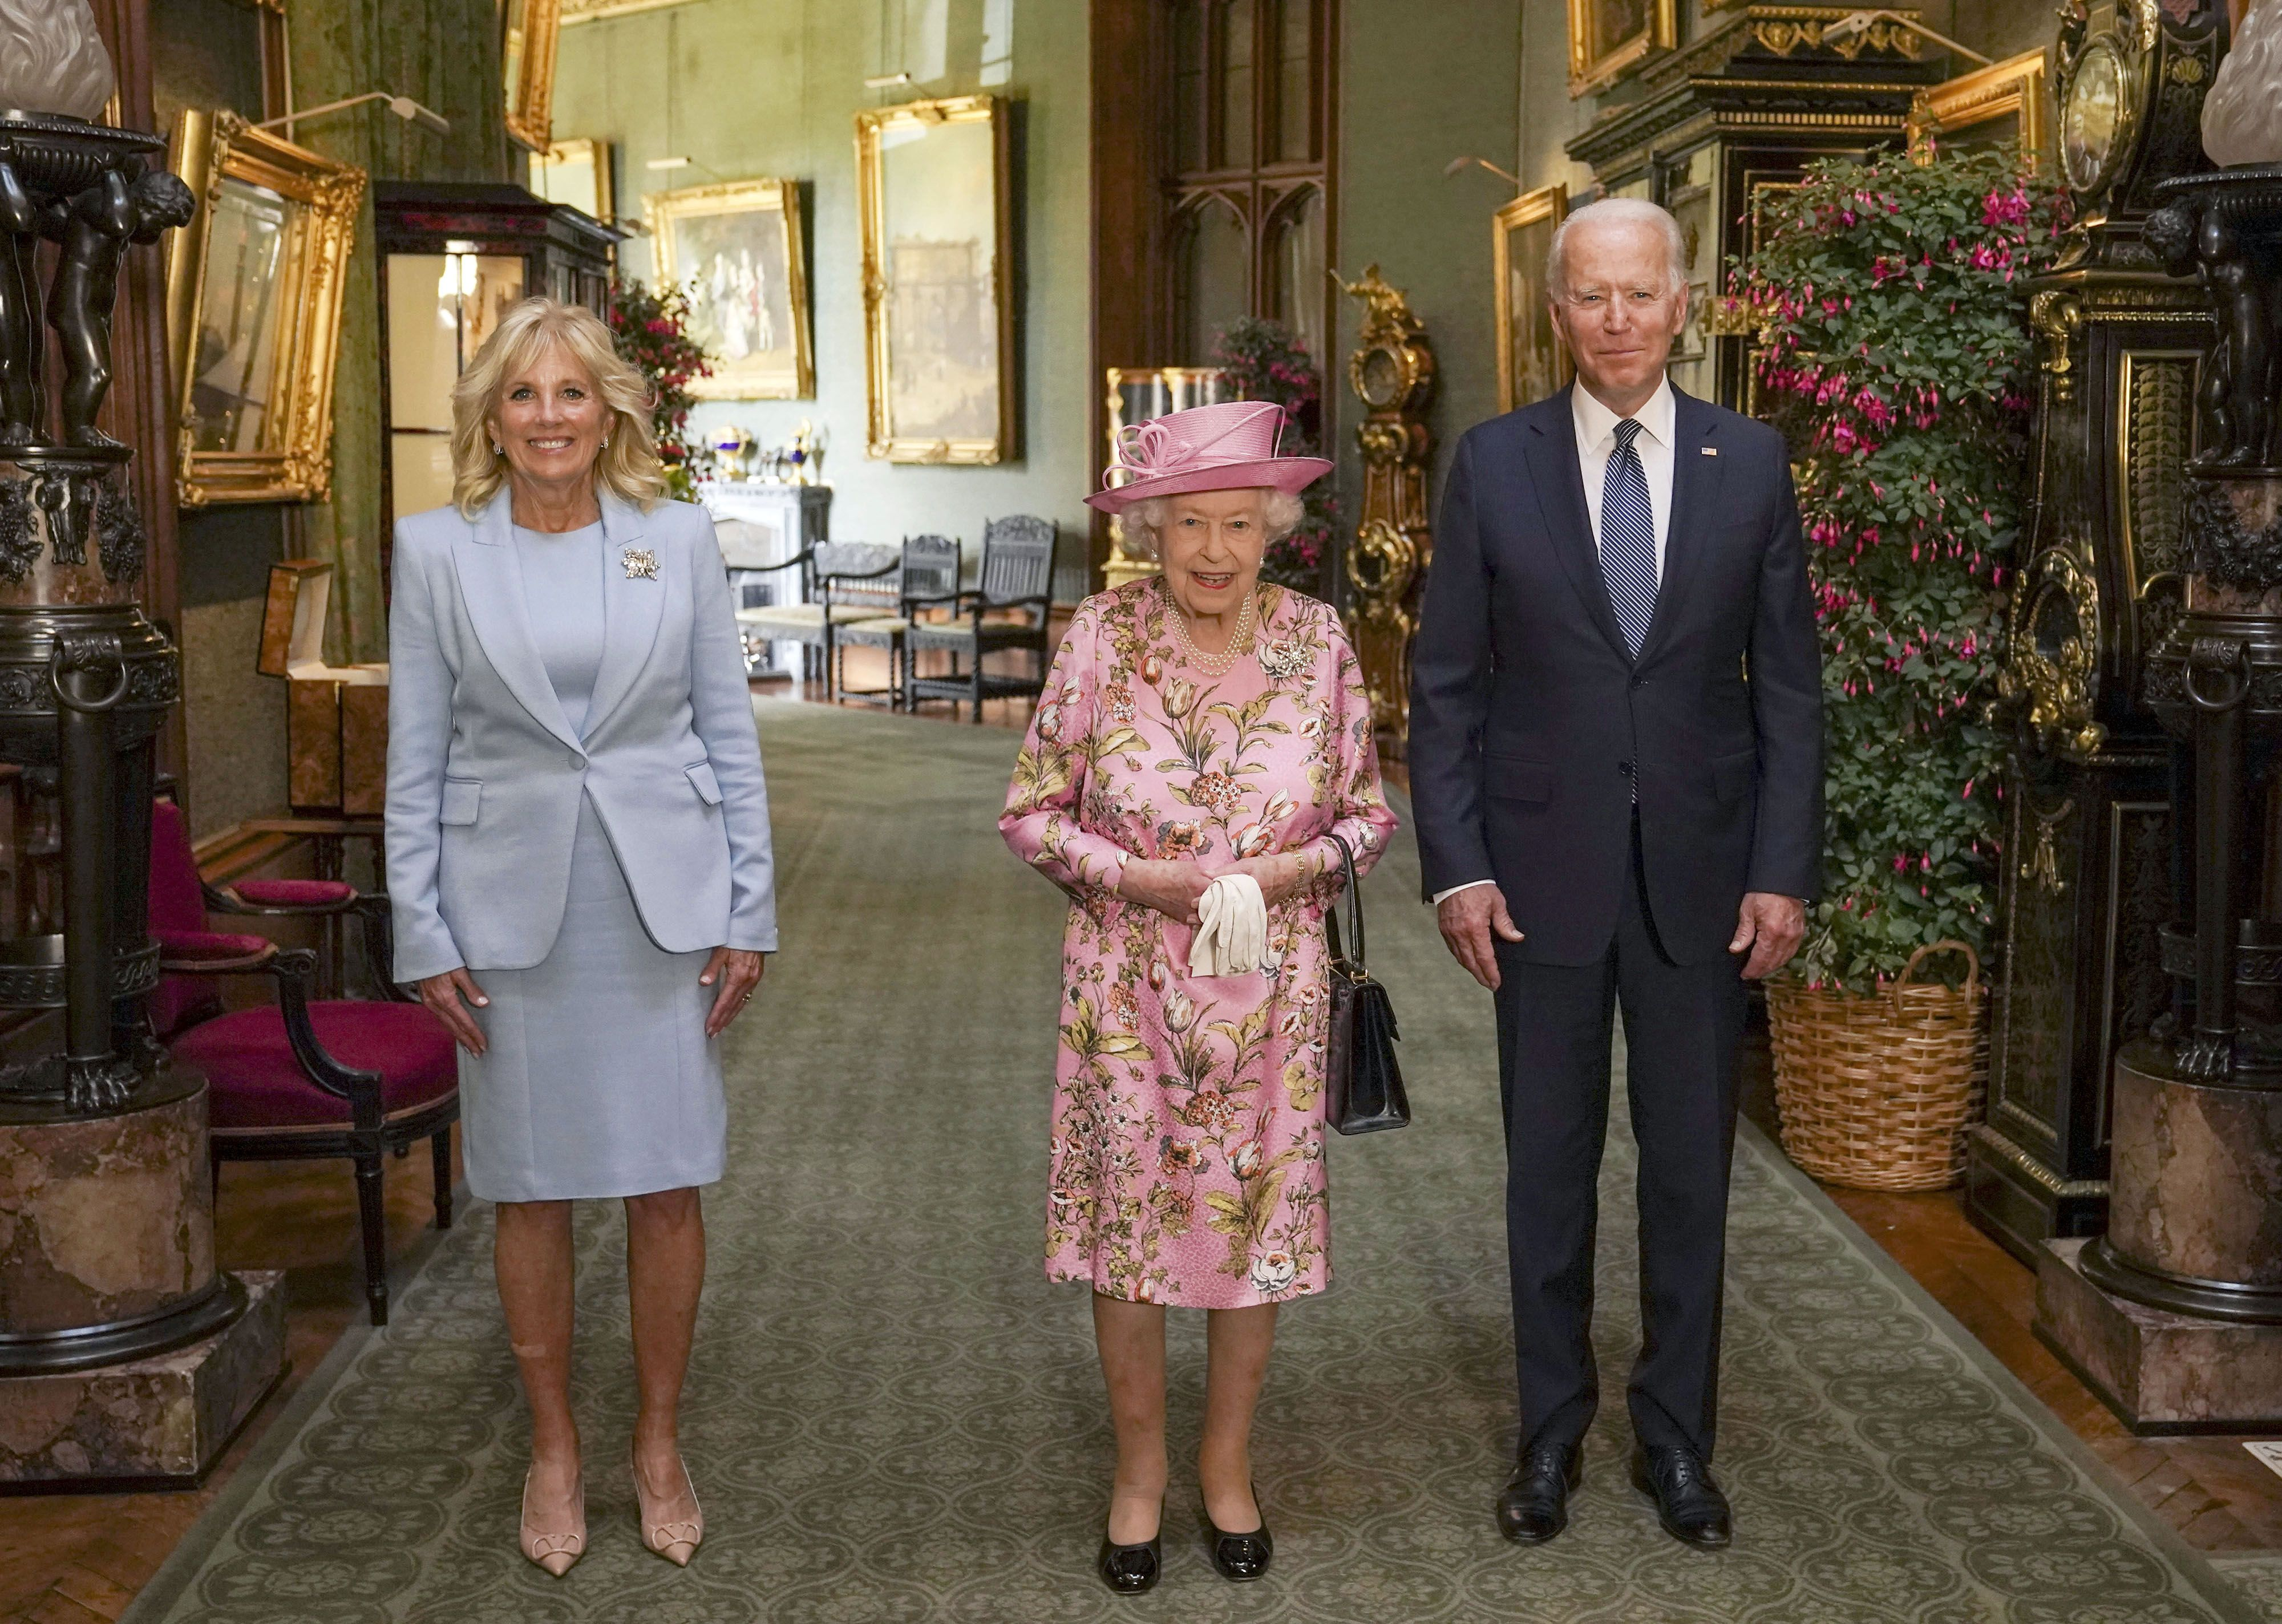 Queen Elizabeth and First Lady Jill Biden Chose Pastel Dresses for Their First Presidential Tea Together